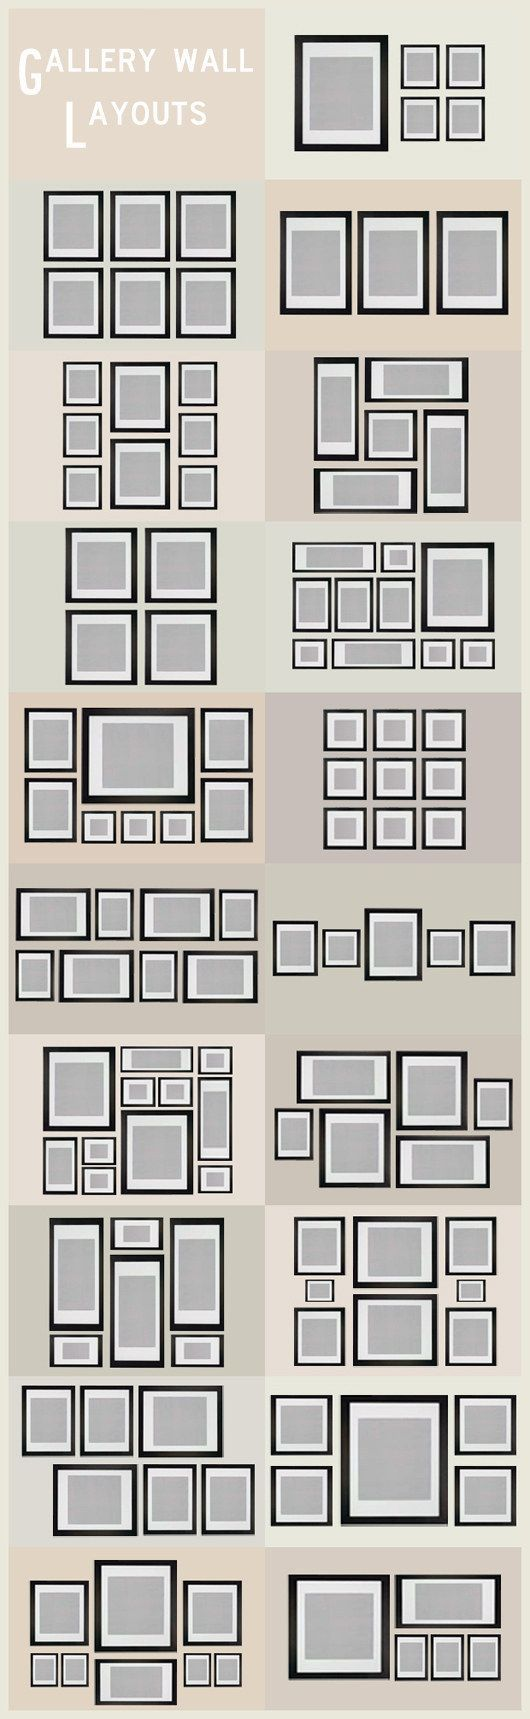 Gallery Wall Layout Ideas | These Diagrams Are Everything You Need To Decorate Your Home